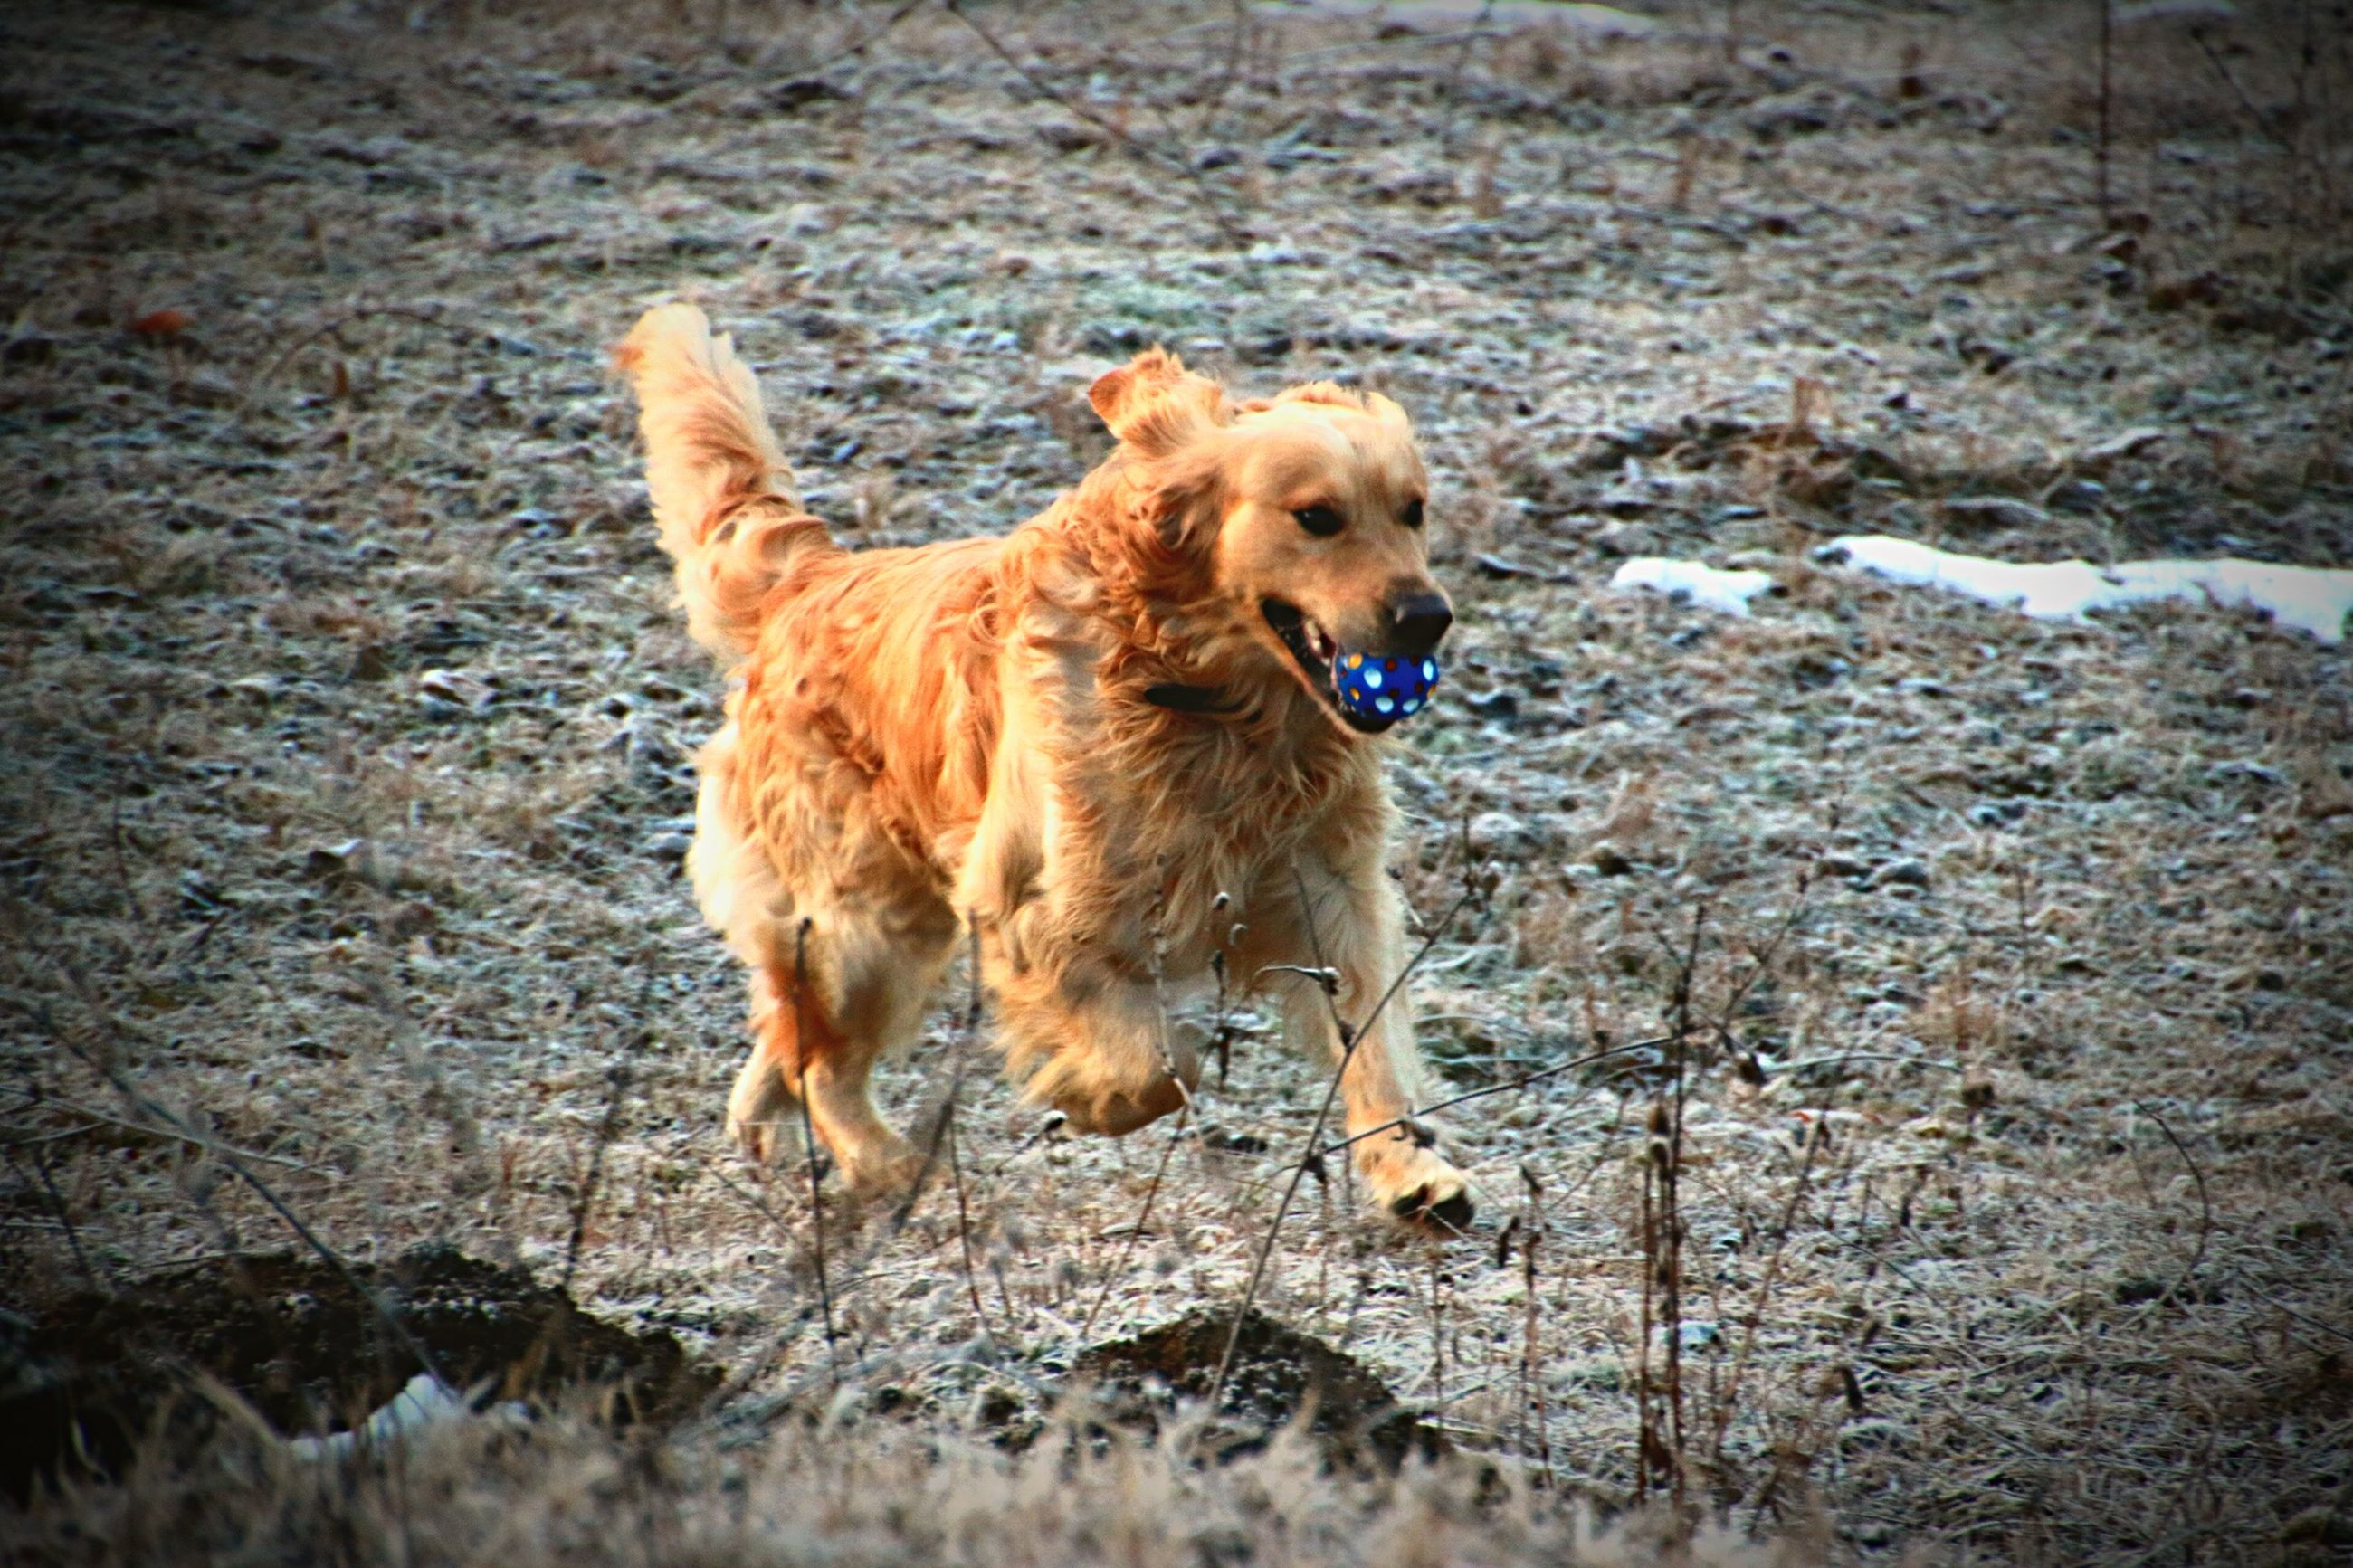 dog, pets, domestic animals, animal themes, golden retriever, one animal, mammal, outdoors, day, no people, retriever, nature